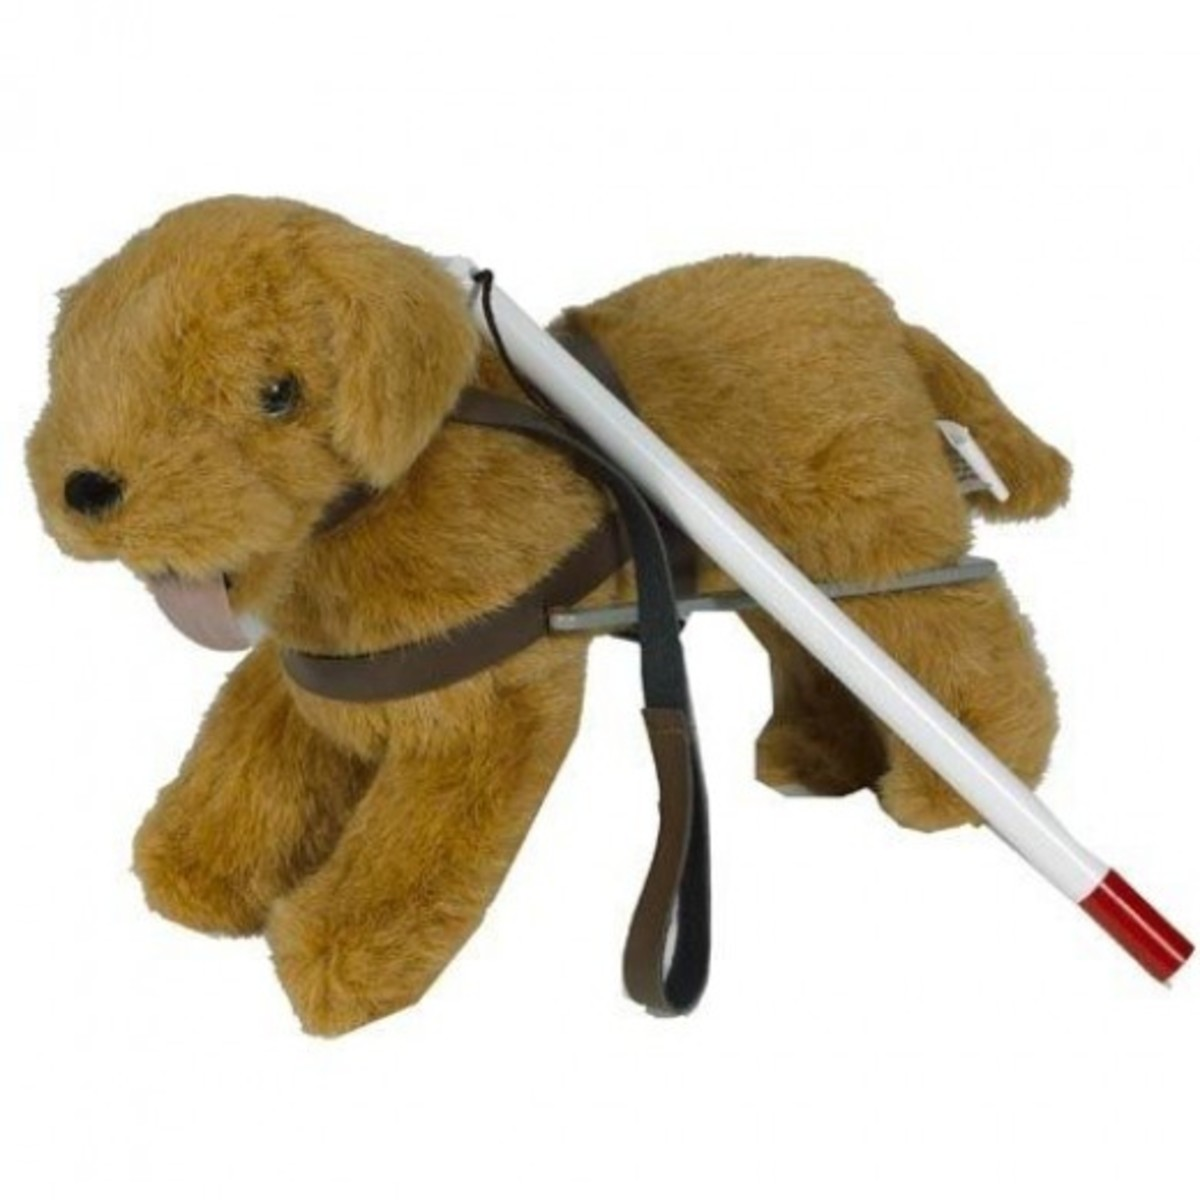 "plush dog guide and white cane for use with 16"" dolls"